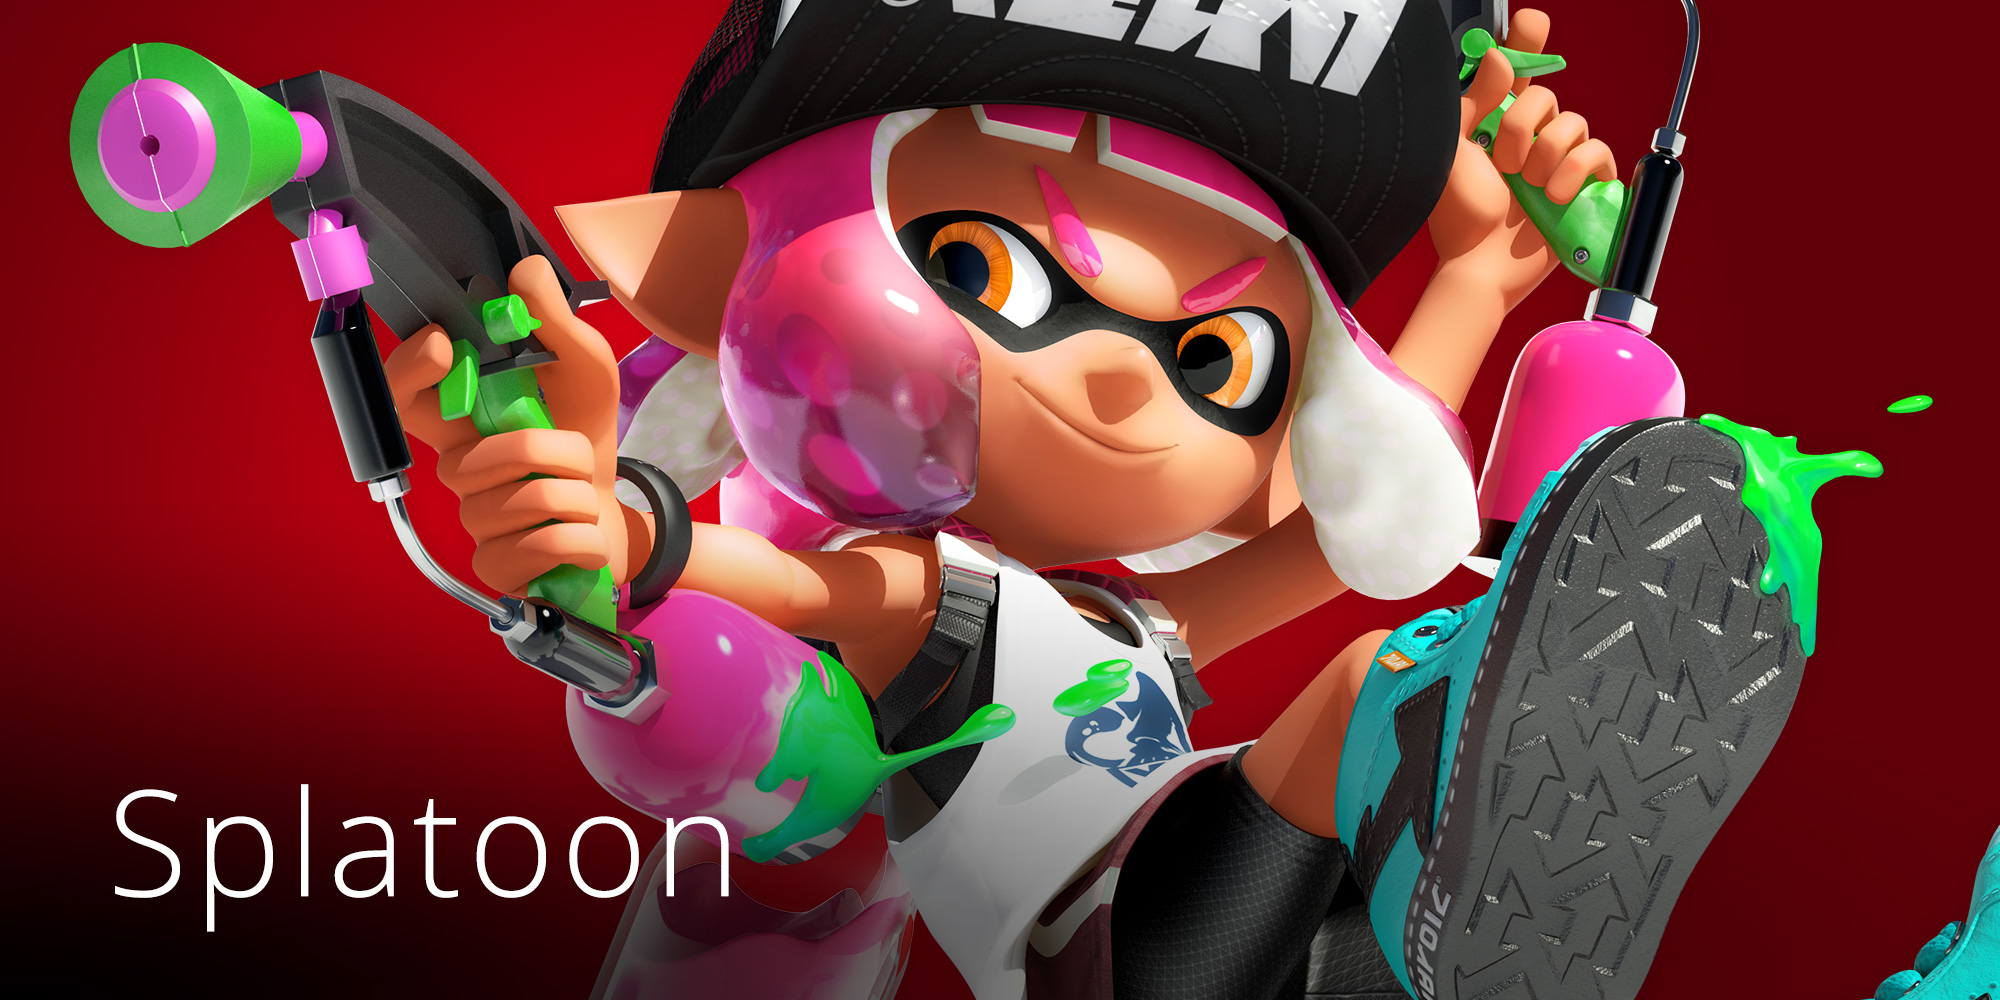 Splatoon-producten